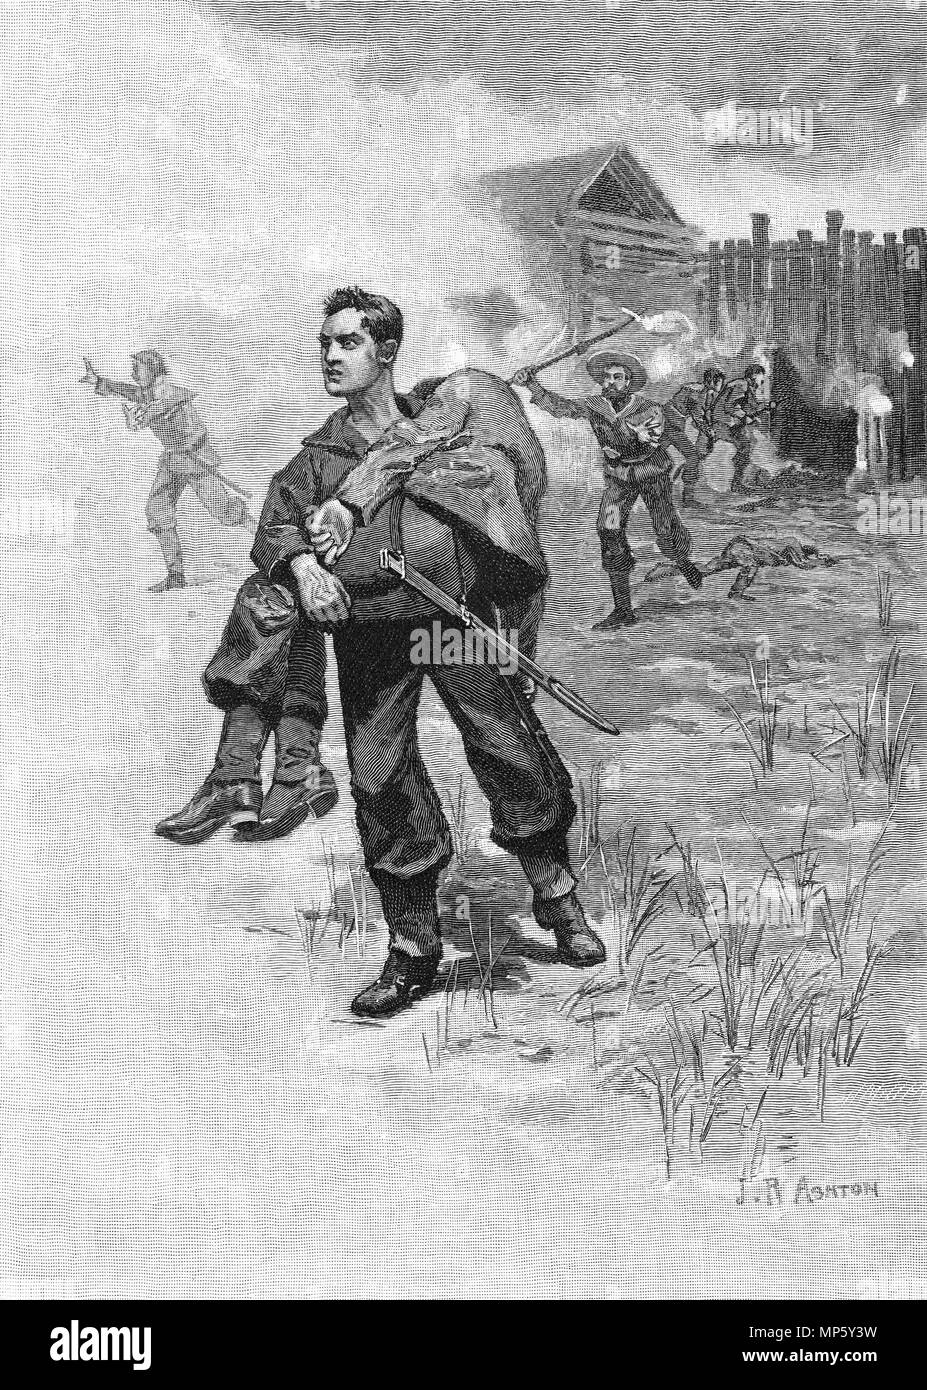 Engraving of a colonial soldier carrying a comrade to safety during the seige of the Gate Pa in the New Zealand Land Wars. From the Picturesque Atlas of Australasia Vol 3, 1886 - Stock Image